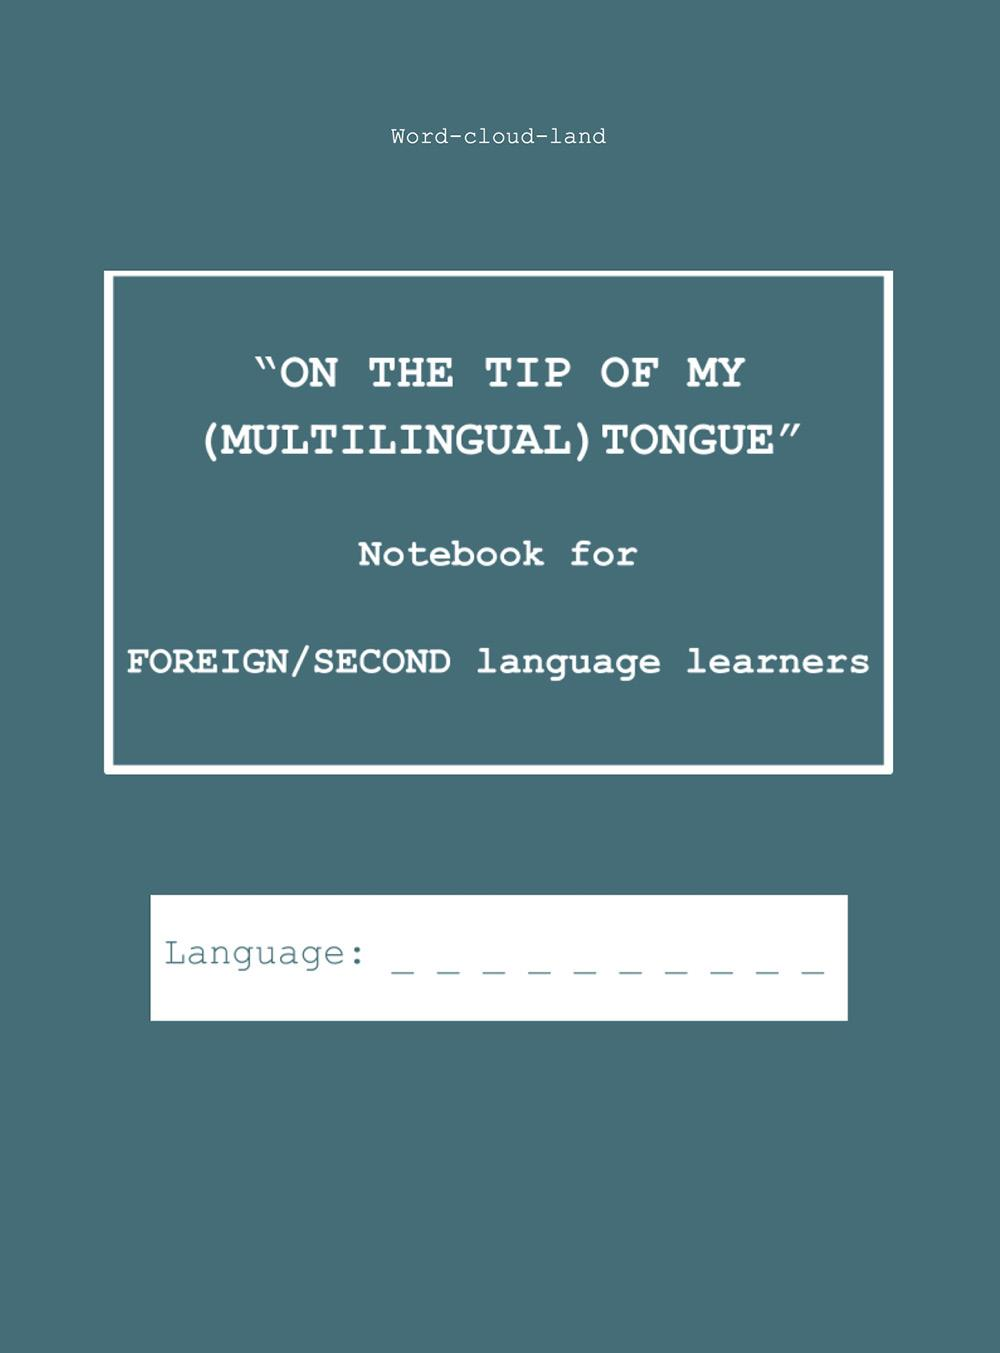 """""""ON THE TIP OF MY (MULTILINGUAL) TONGUE"""" Notebook for FOREIGN/SECOND language learners"""